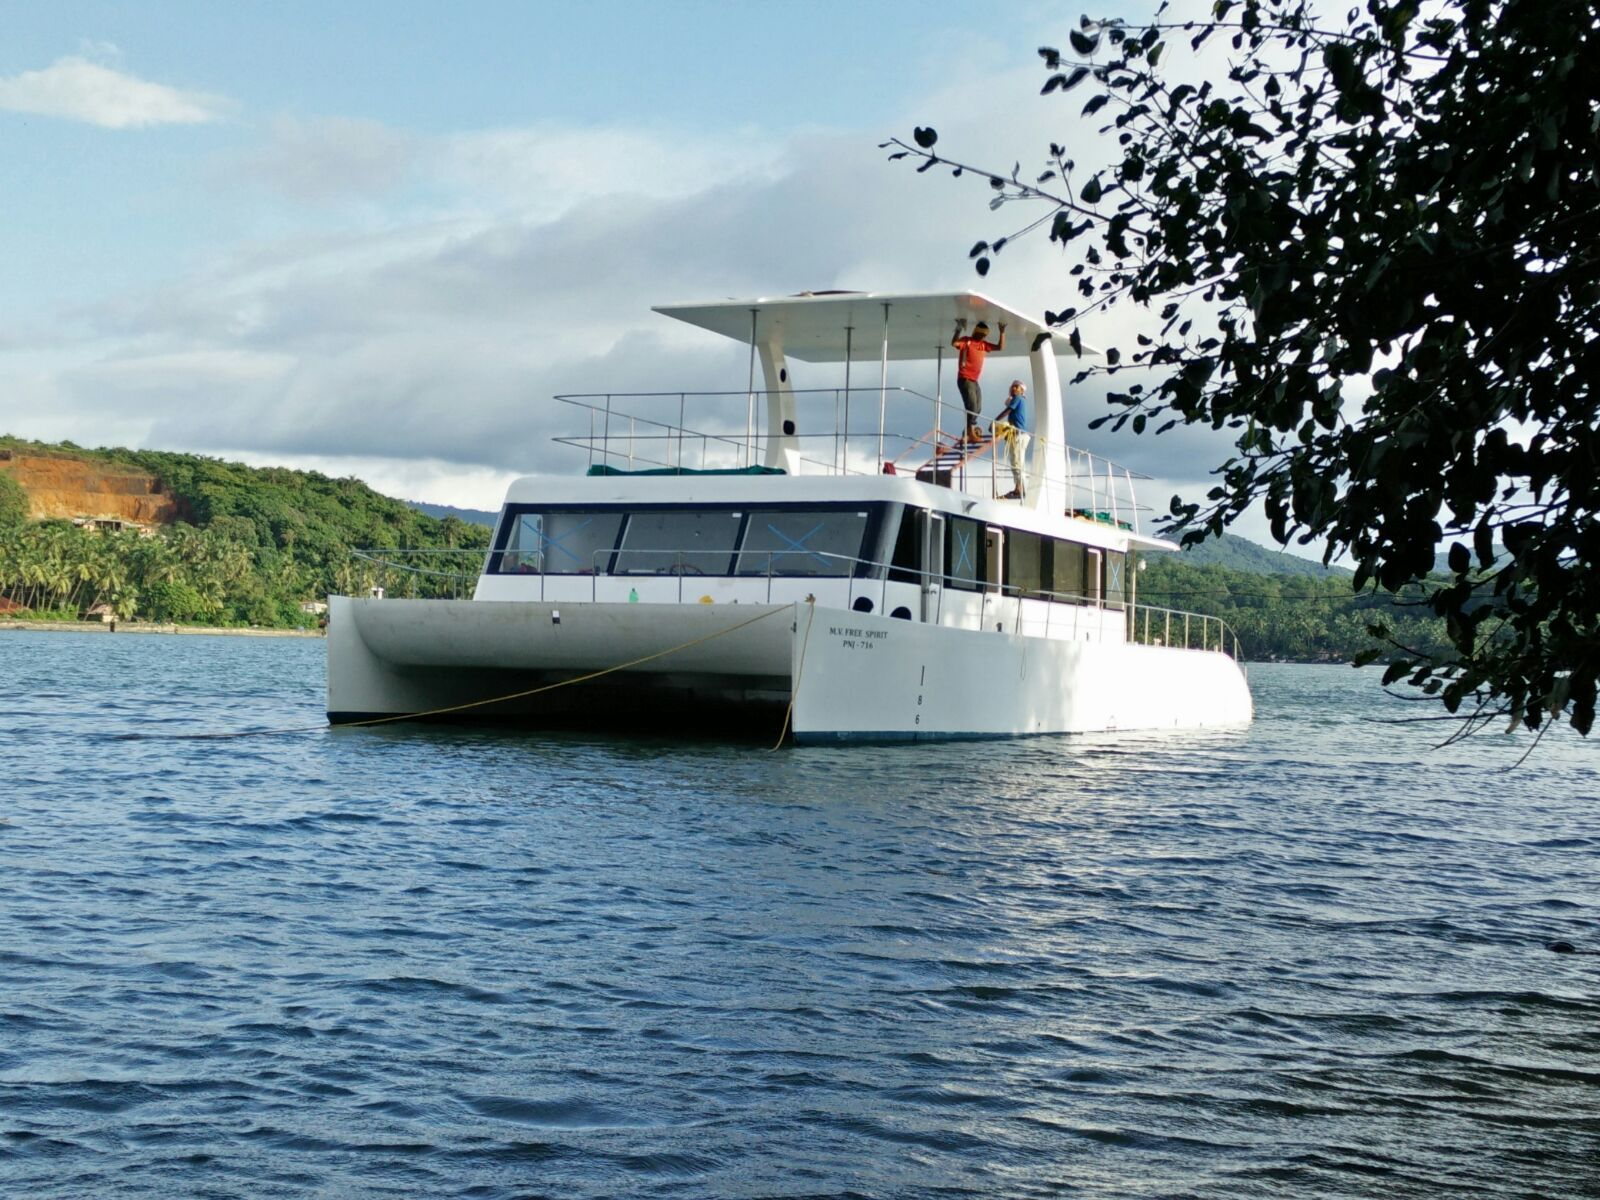 open id yachts cabin luxury sports shipandocean cruiser cabins cruisers marketplace post princess listings com